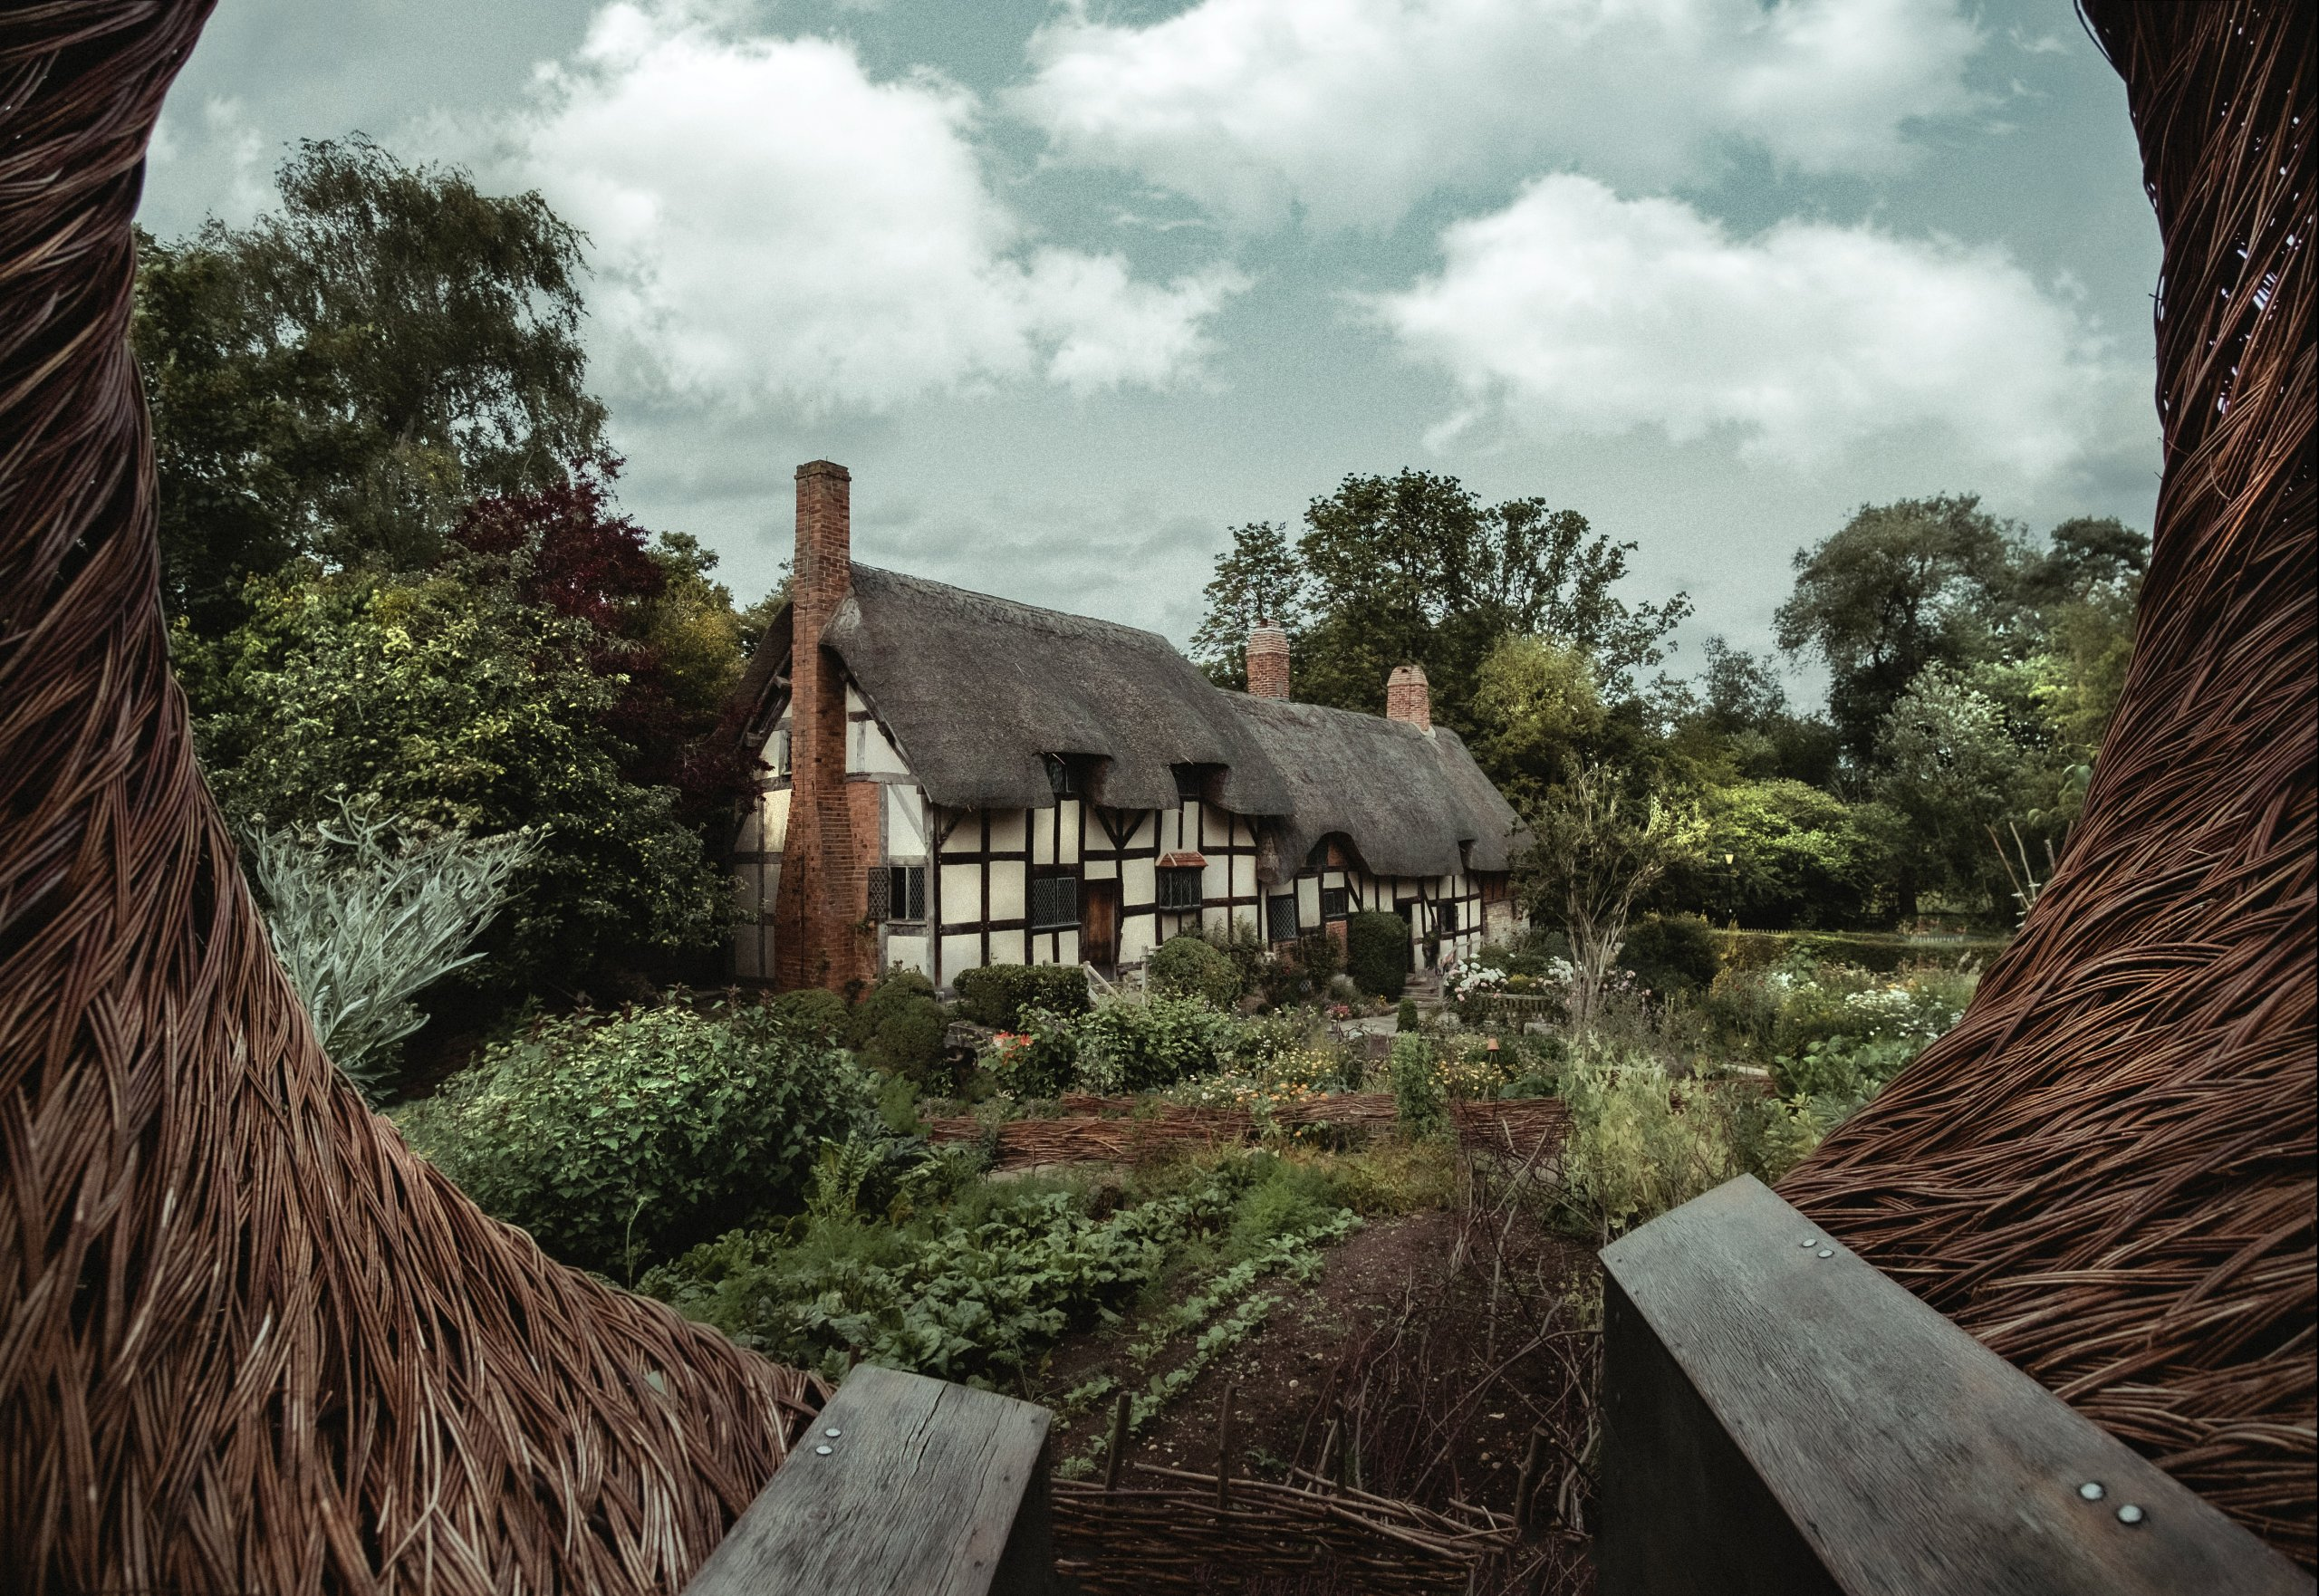 Tudor farmhouse on cloudy day with large garden and trees in front